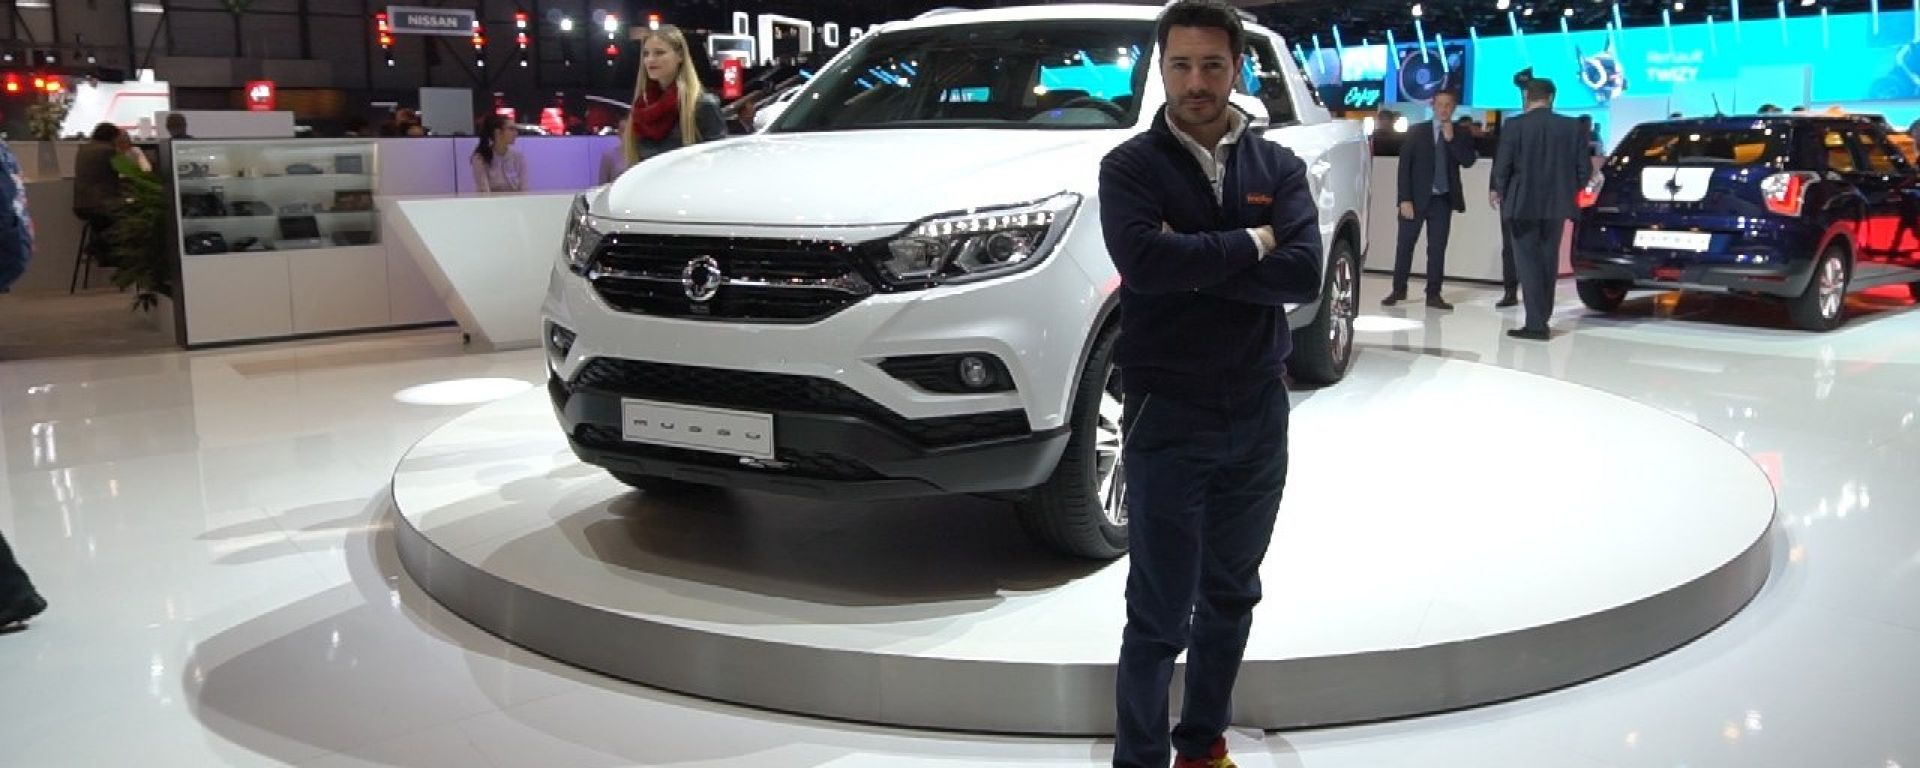 SsangYong Musso 2018 pick up: in video dal Salone di Ginevra